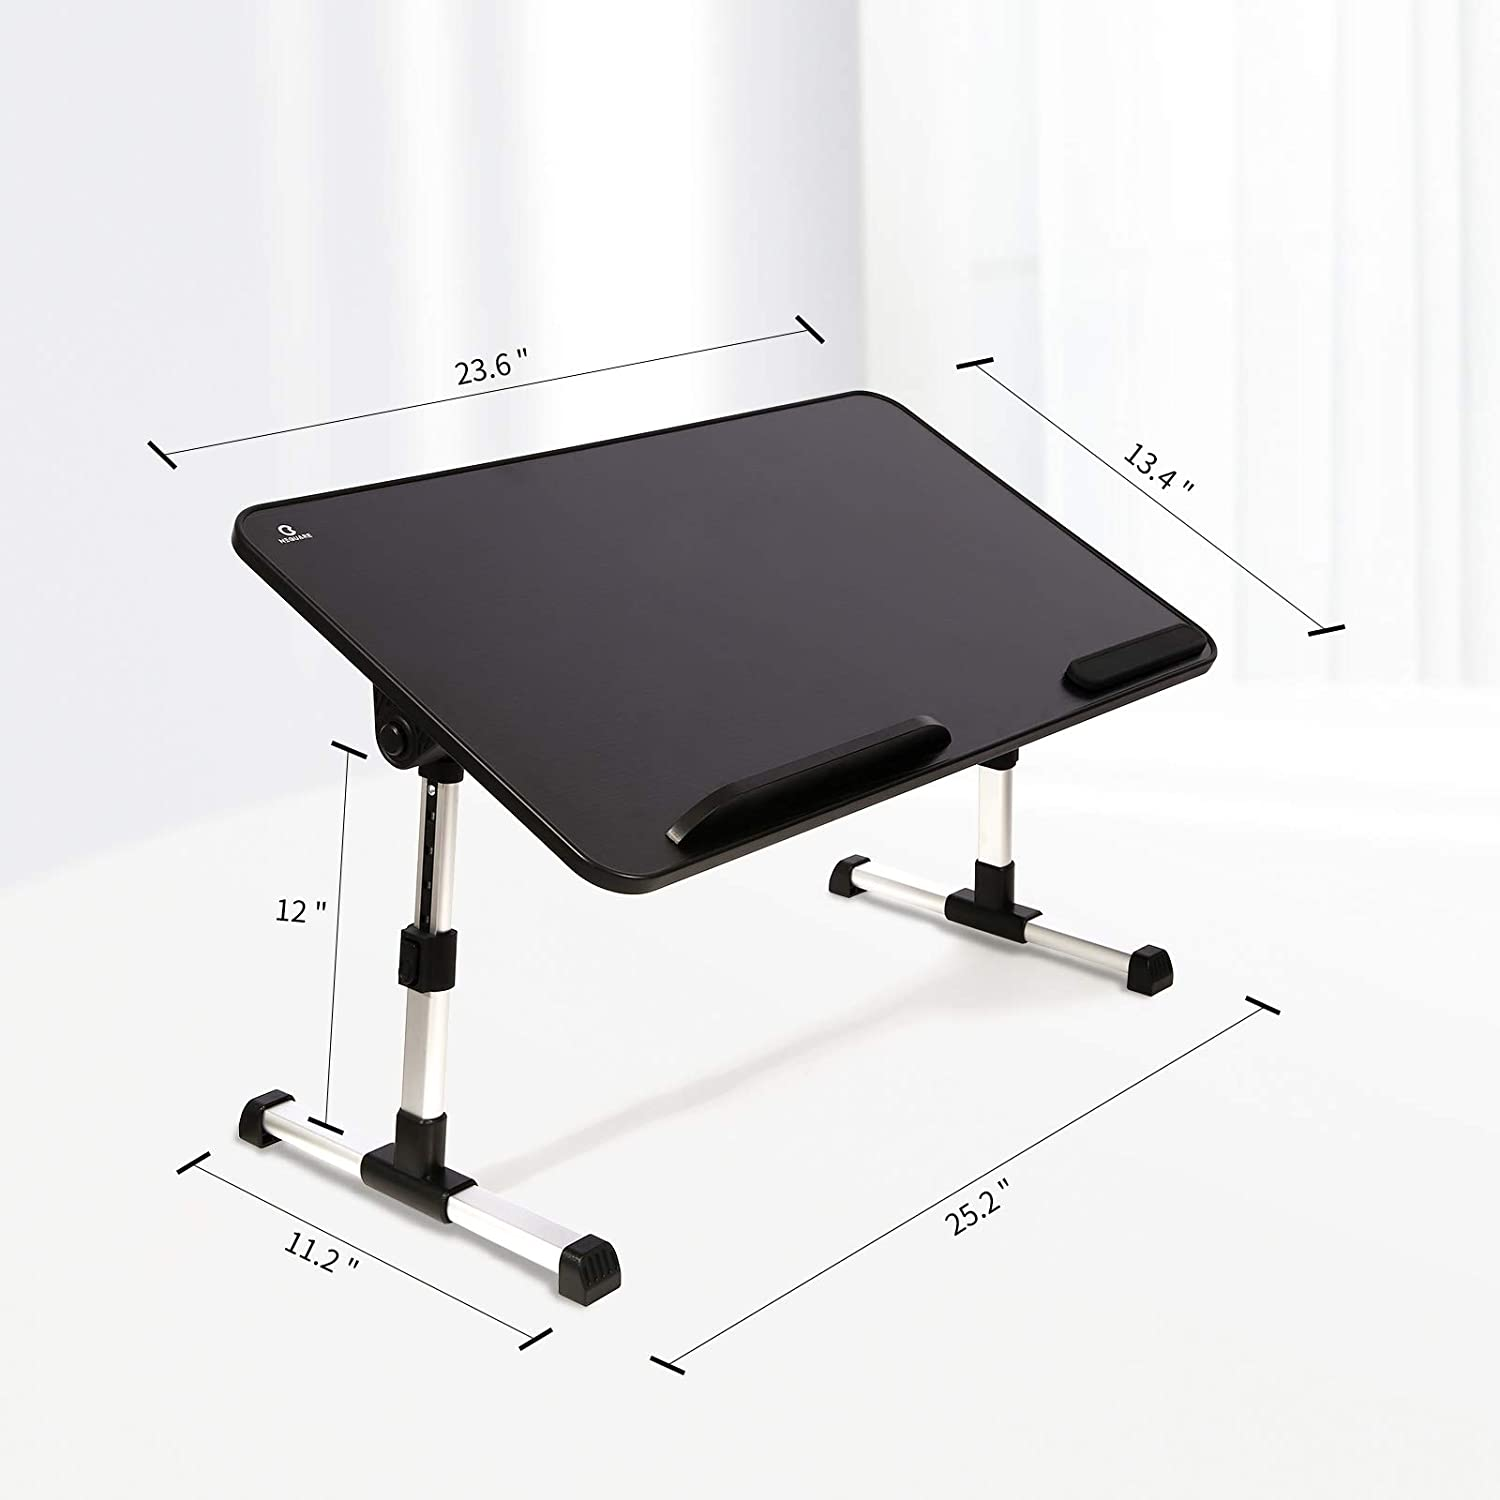 Portable Bed Desk for Laptop NEQUARE Adjustable Laptop Stand for Bed Working on Bed Foldable Bed Tray Table for Eating Fits up to 18 inch Laptop Ergonomic Design Sofa Laptop Desk for Bed Black